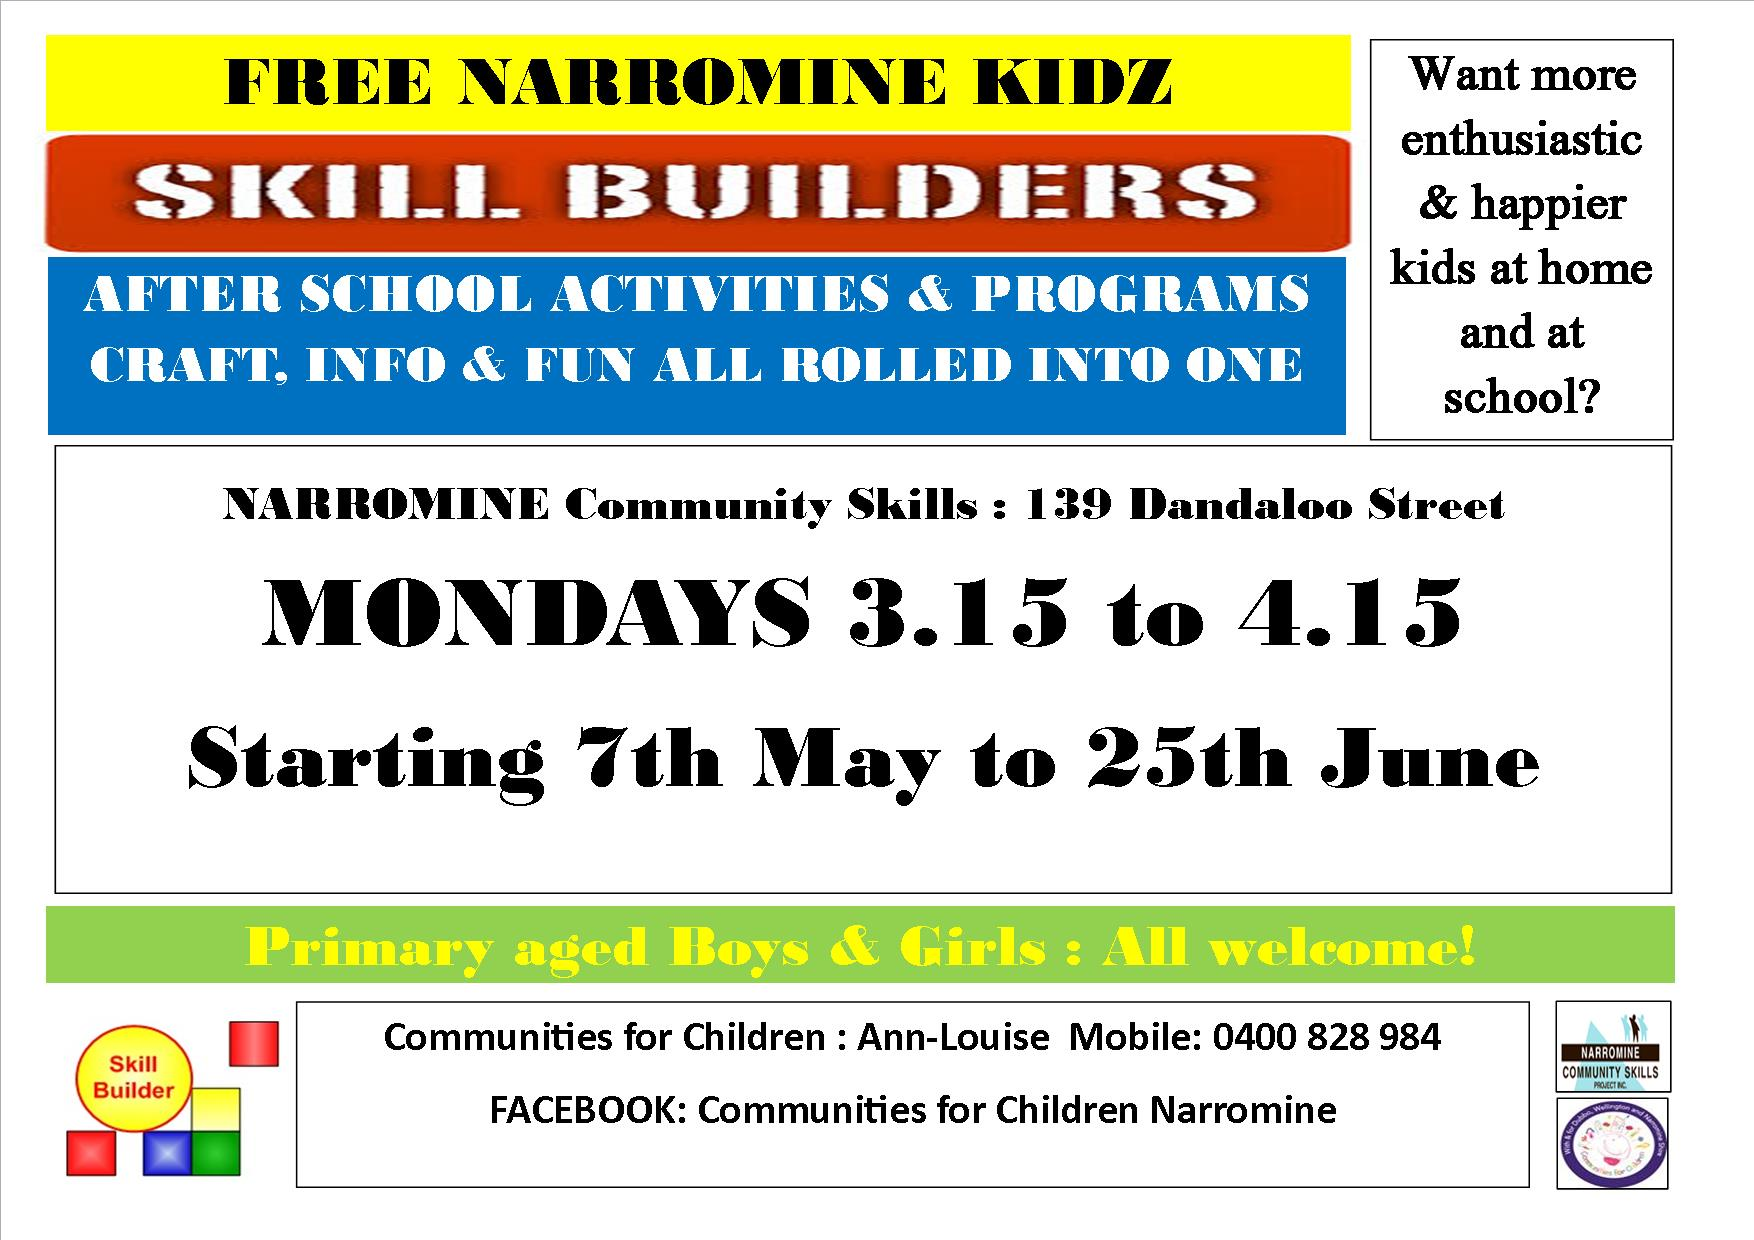 Skill Builders Free Afternoon Programs by Communities for Children